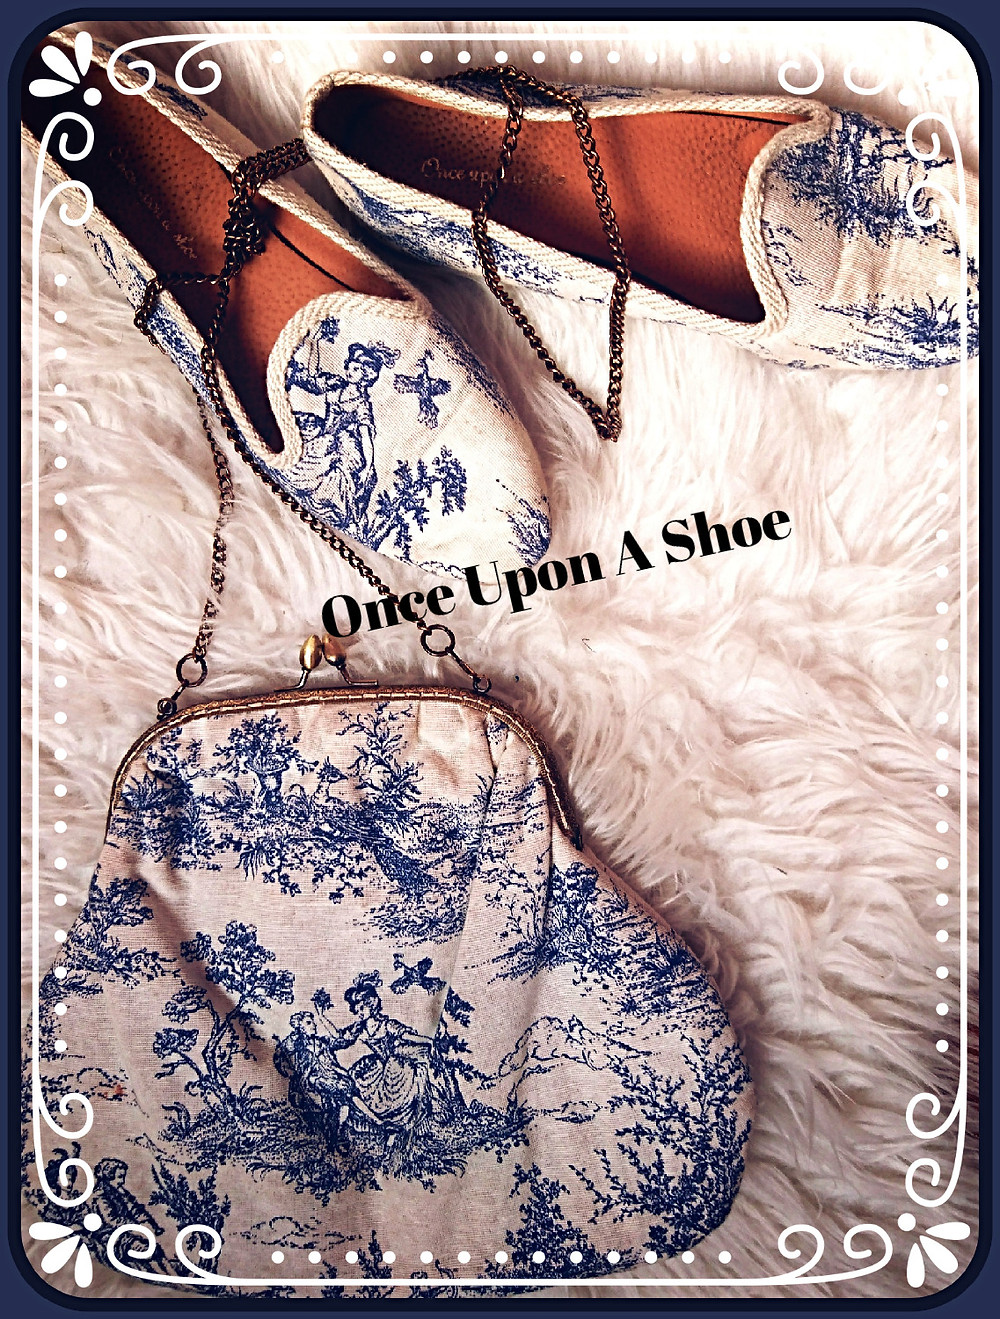 Handmade Fashion Creations By Once Upon A Shoe - Photo credit Mary Samou